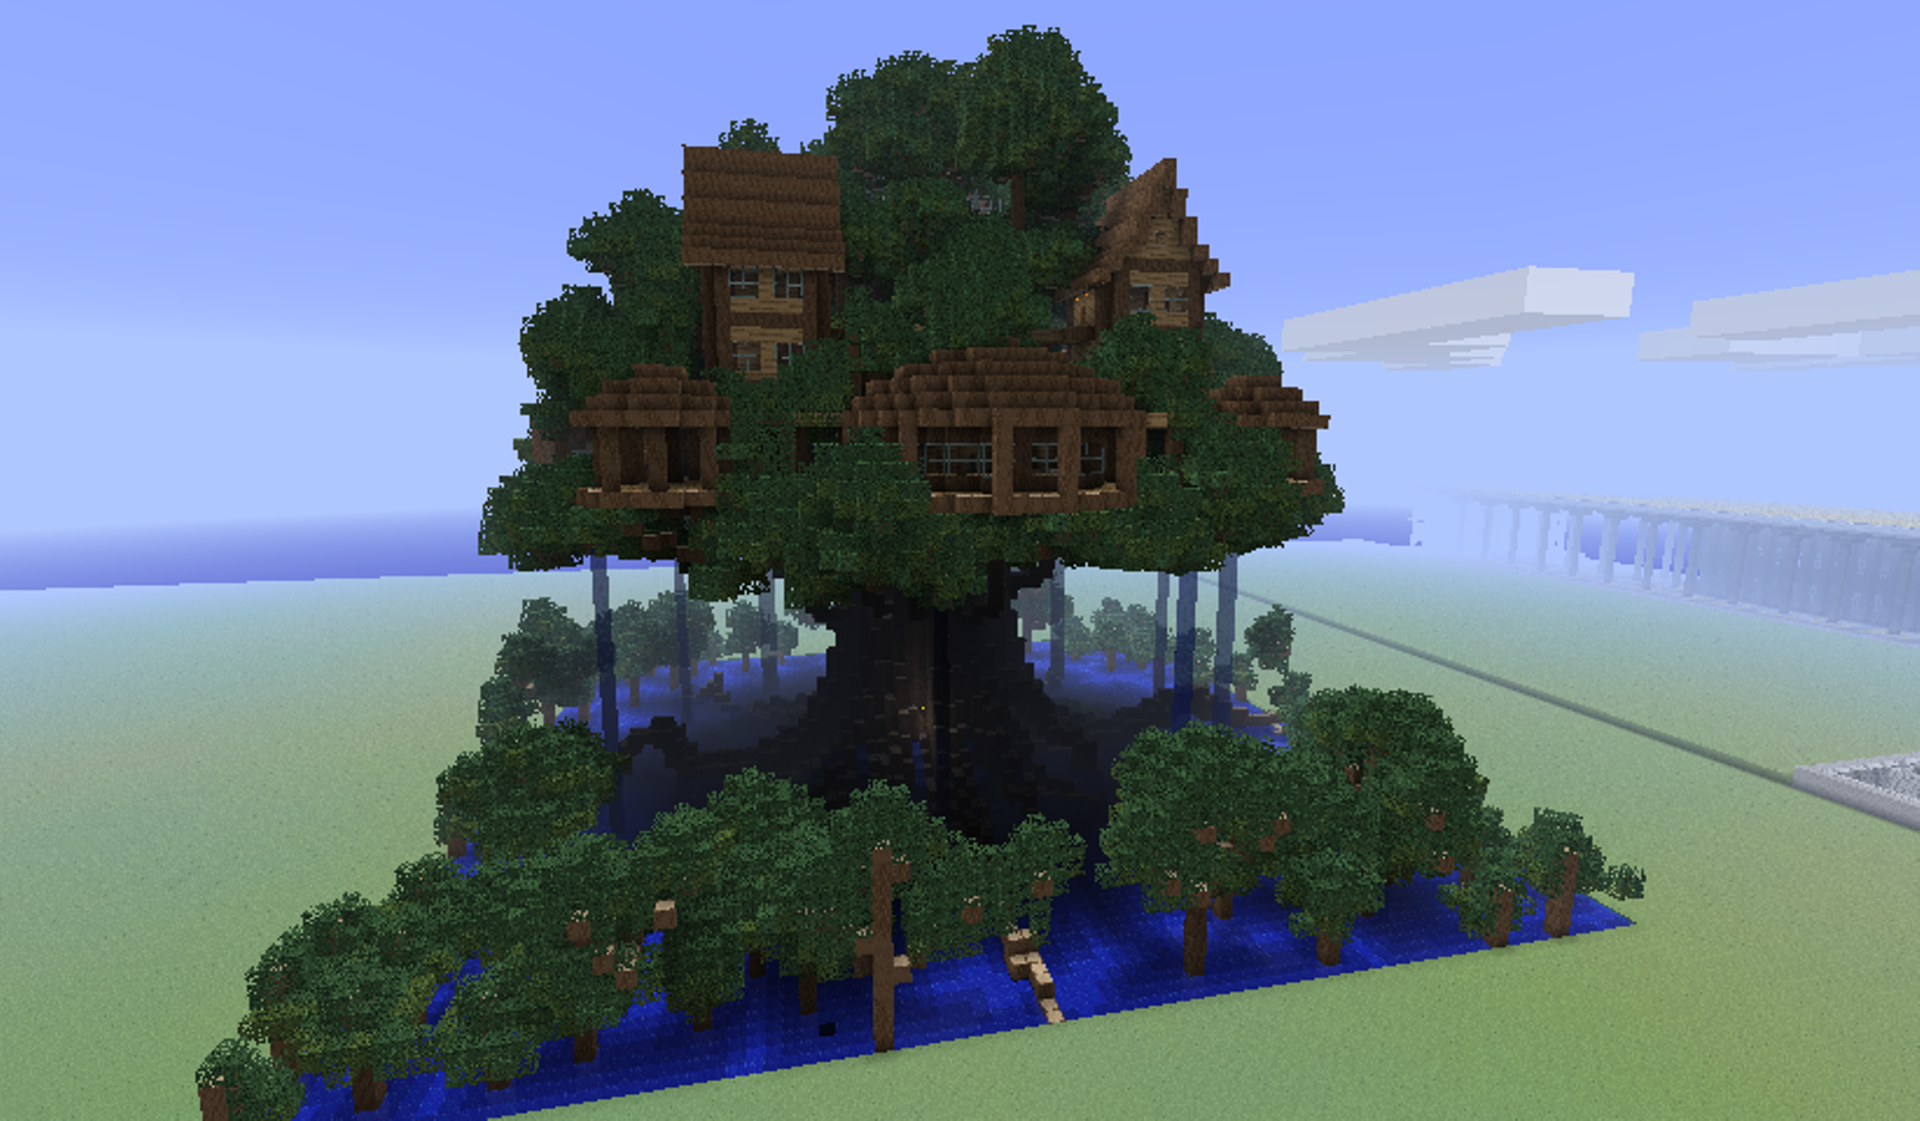 Minecraft Tree Houses | Things for Scott | Pinterest ...